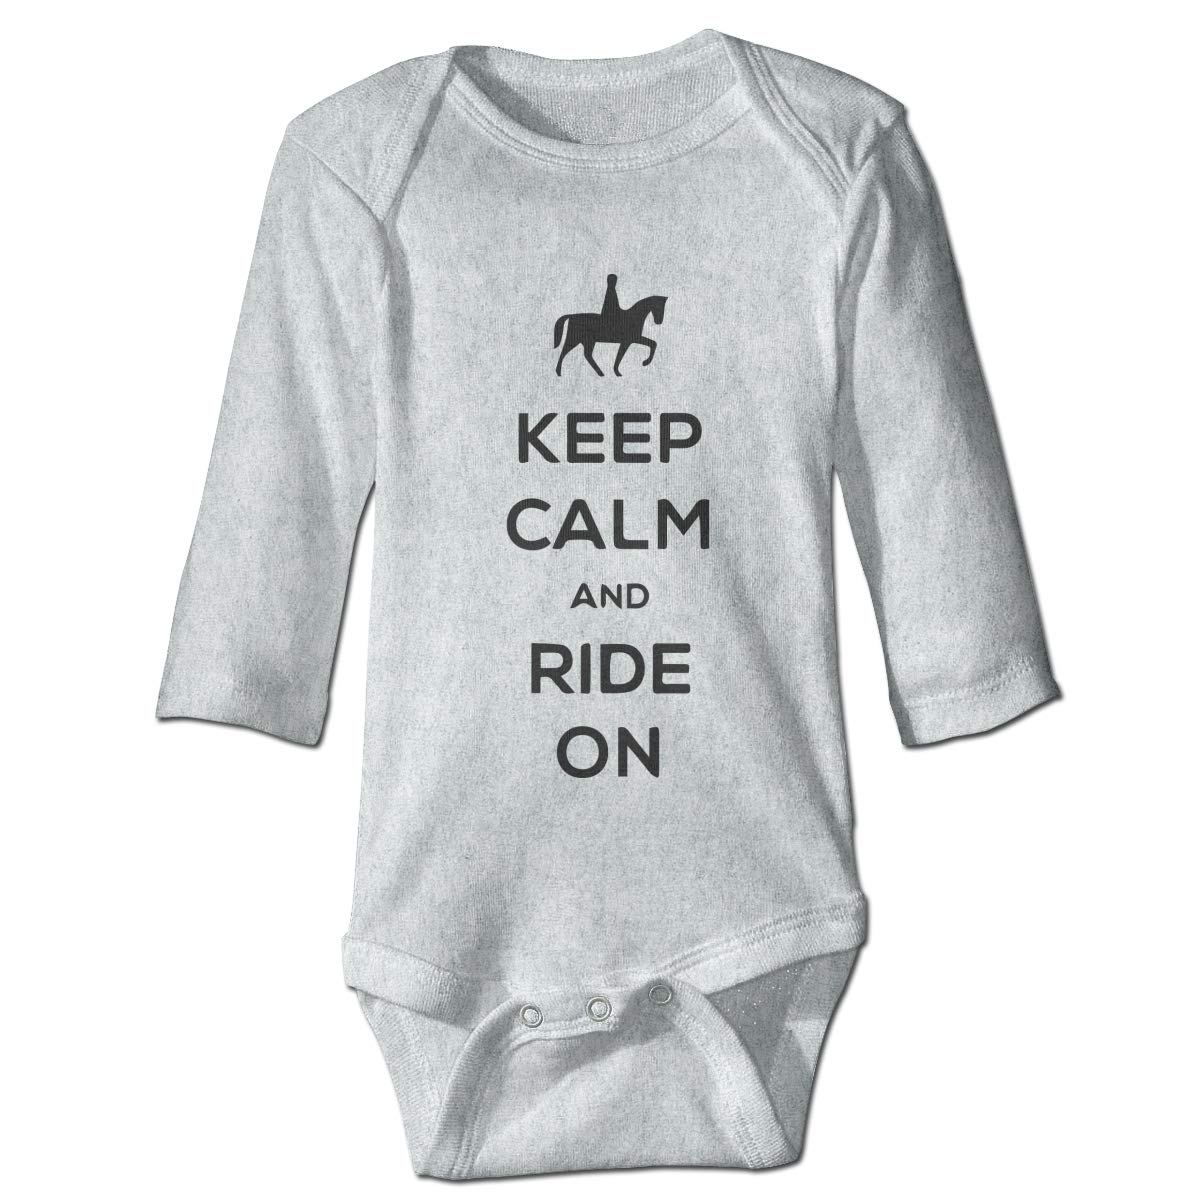 Baby Infant Toddler Romper Bodysuit Jumpsuit Keep Calm and Ride On 1 Long Sleeve Funny Romper Bodysuit